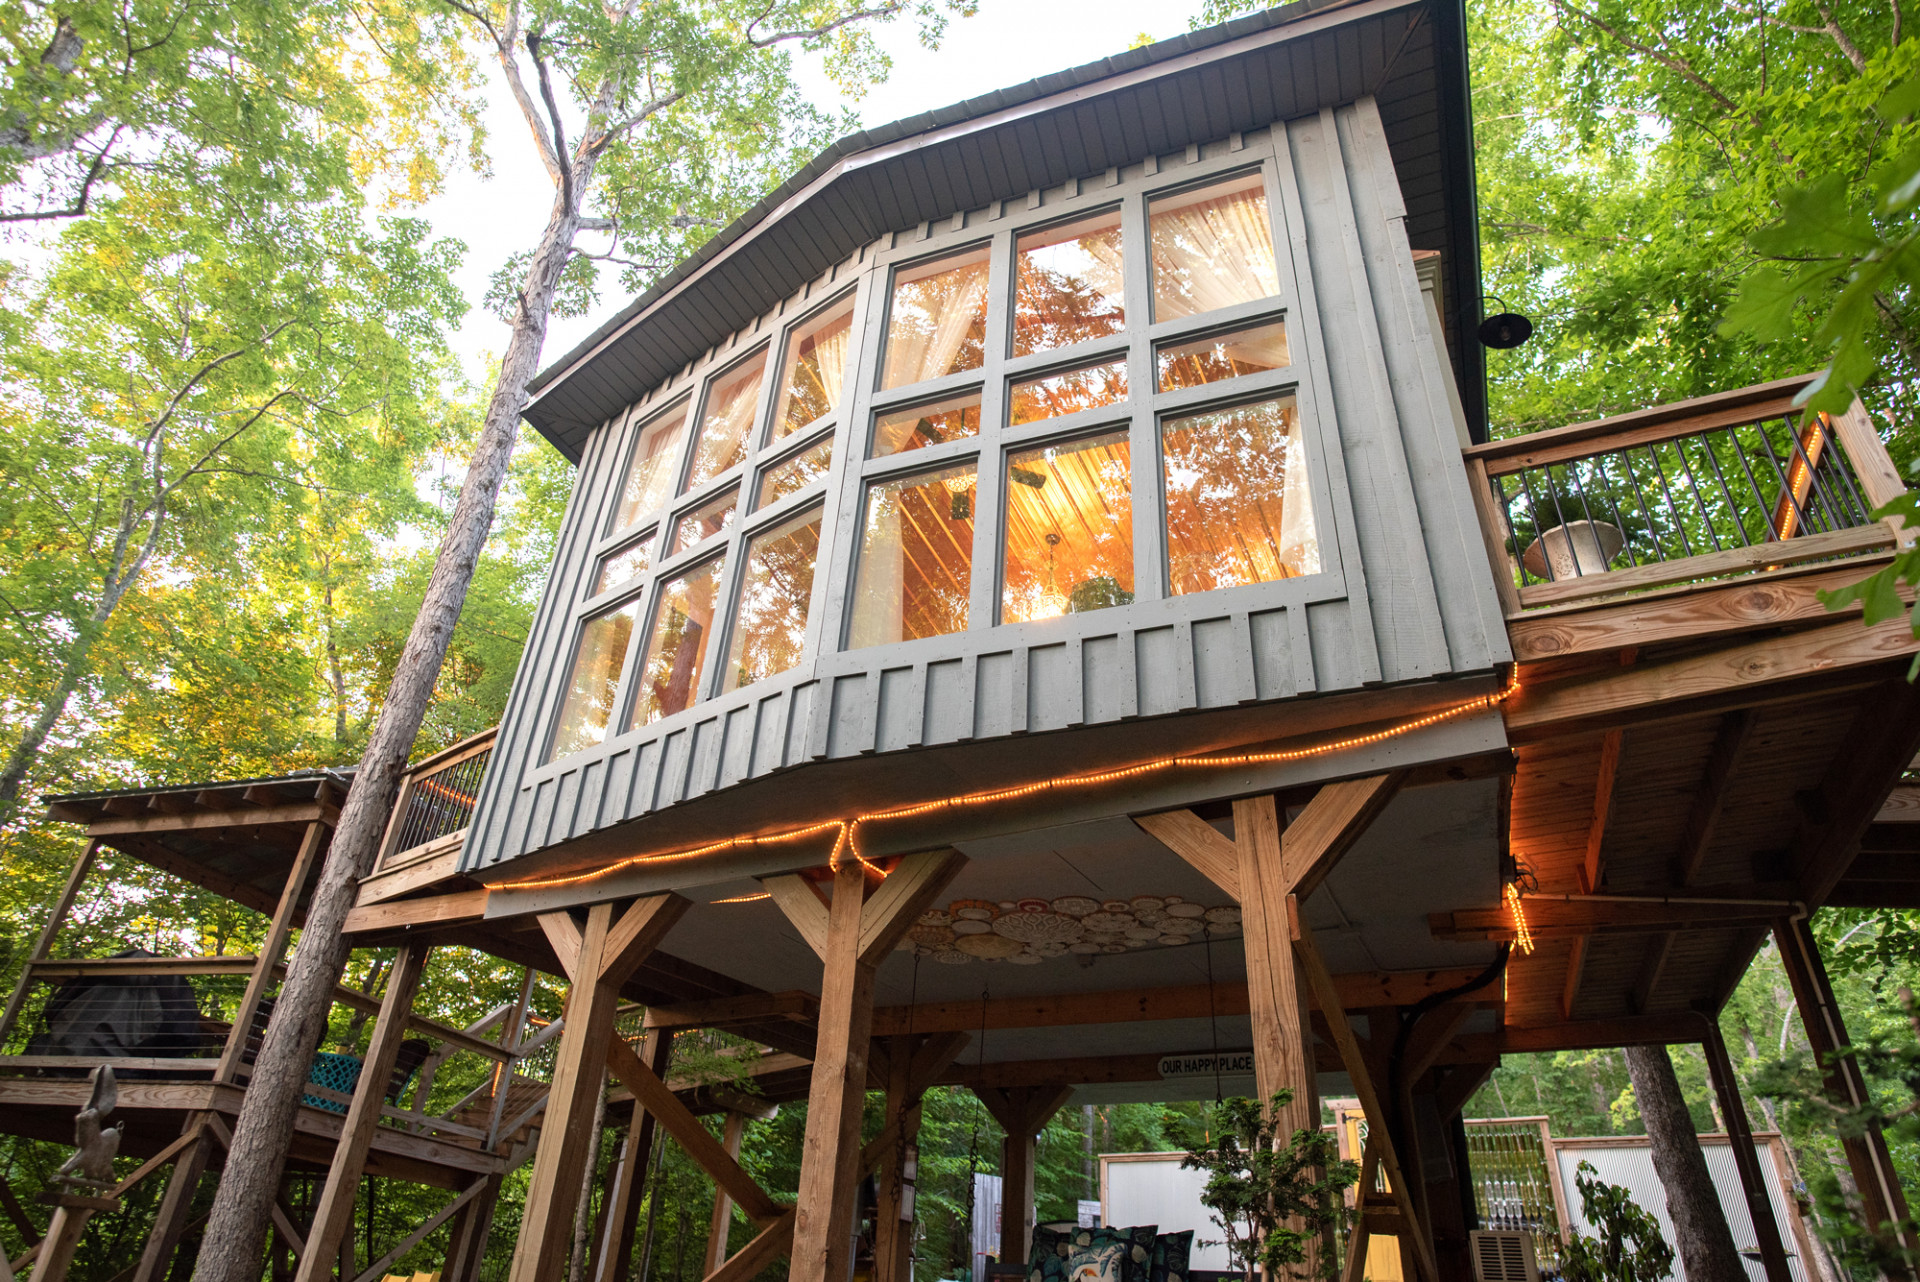 The Sulfur Ridge Treehouse is one of the best treehouse rentals in Tennessee!